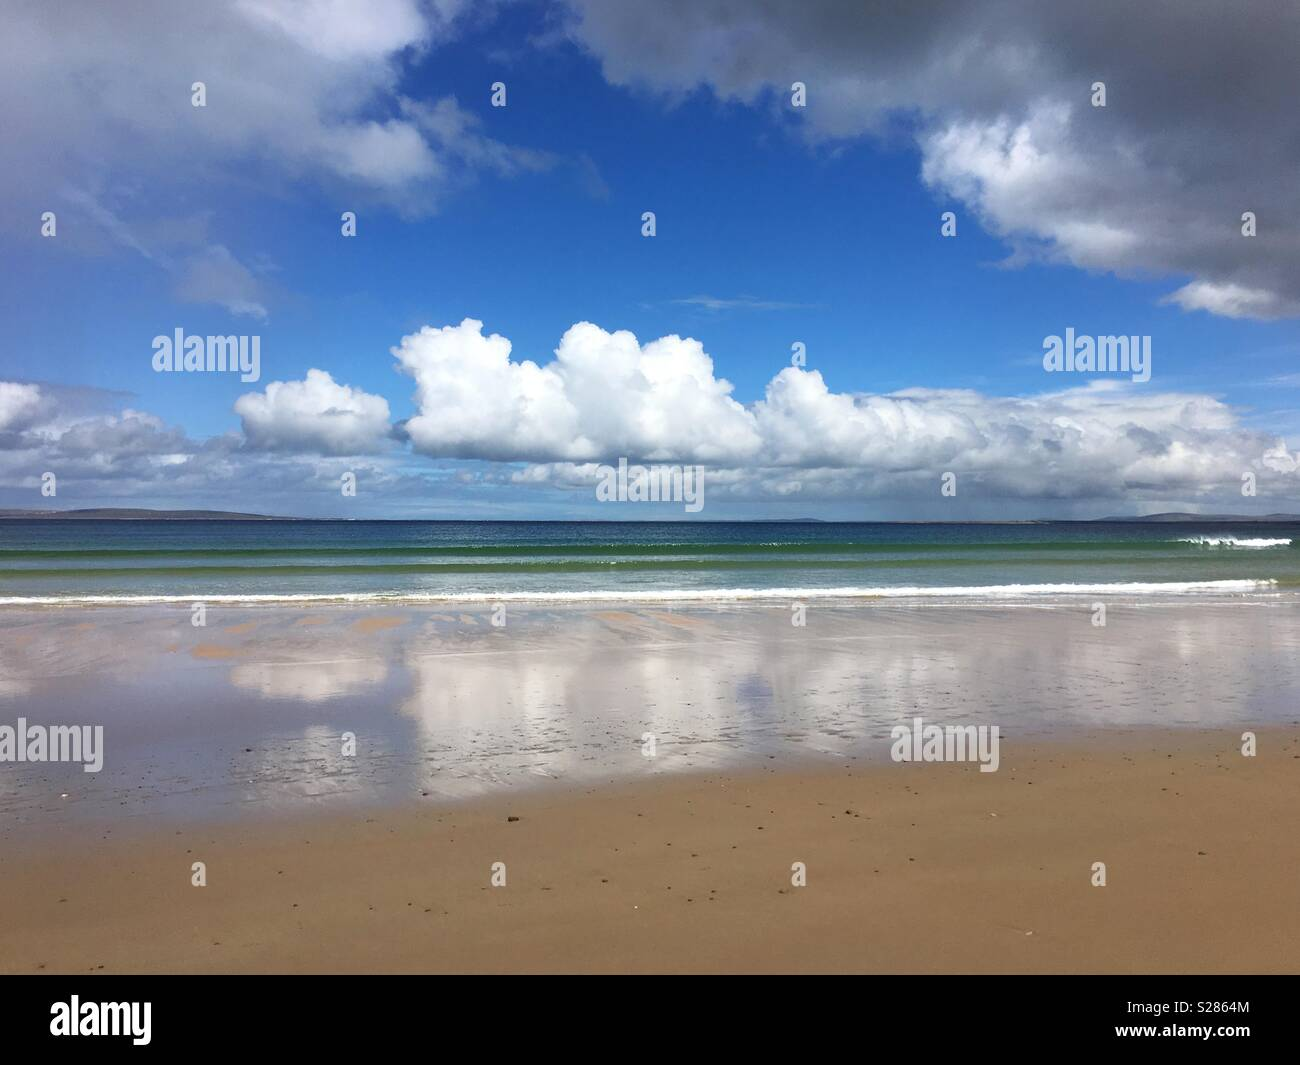 Beach, sea, blue sky and clouds on Achill Island, County Mayo, Ireland Stock Photo